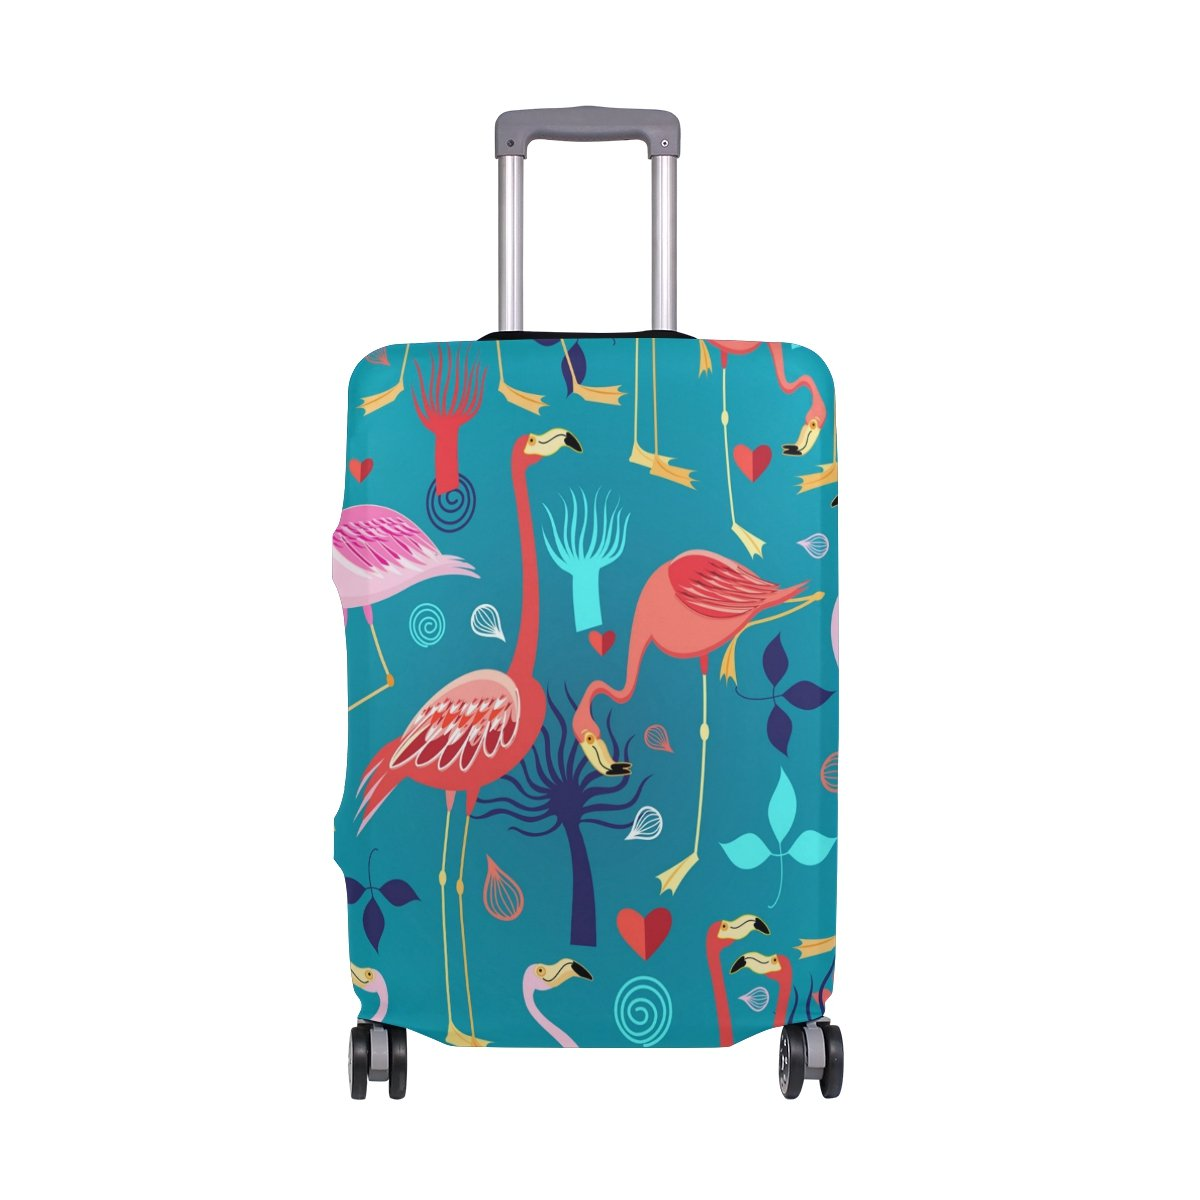 Hello Welcome Tropical Flamingo Floral Heart Love Valentines Suitcase Luggage Cover Protector for Travel Kids Men Women